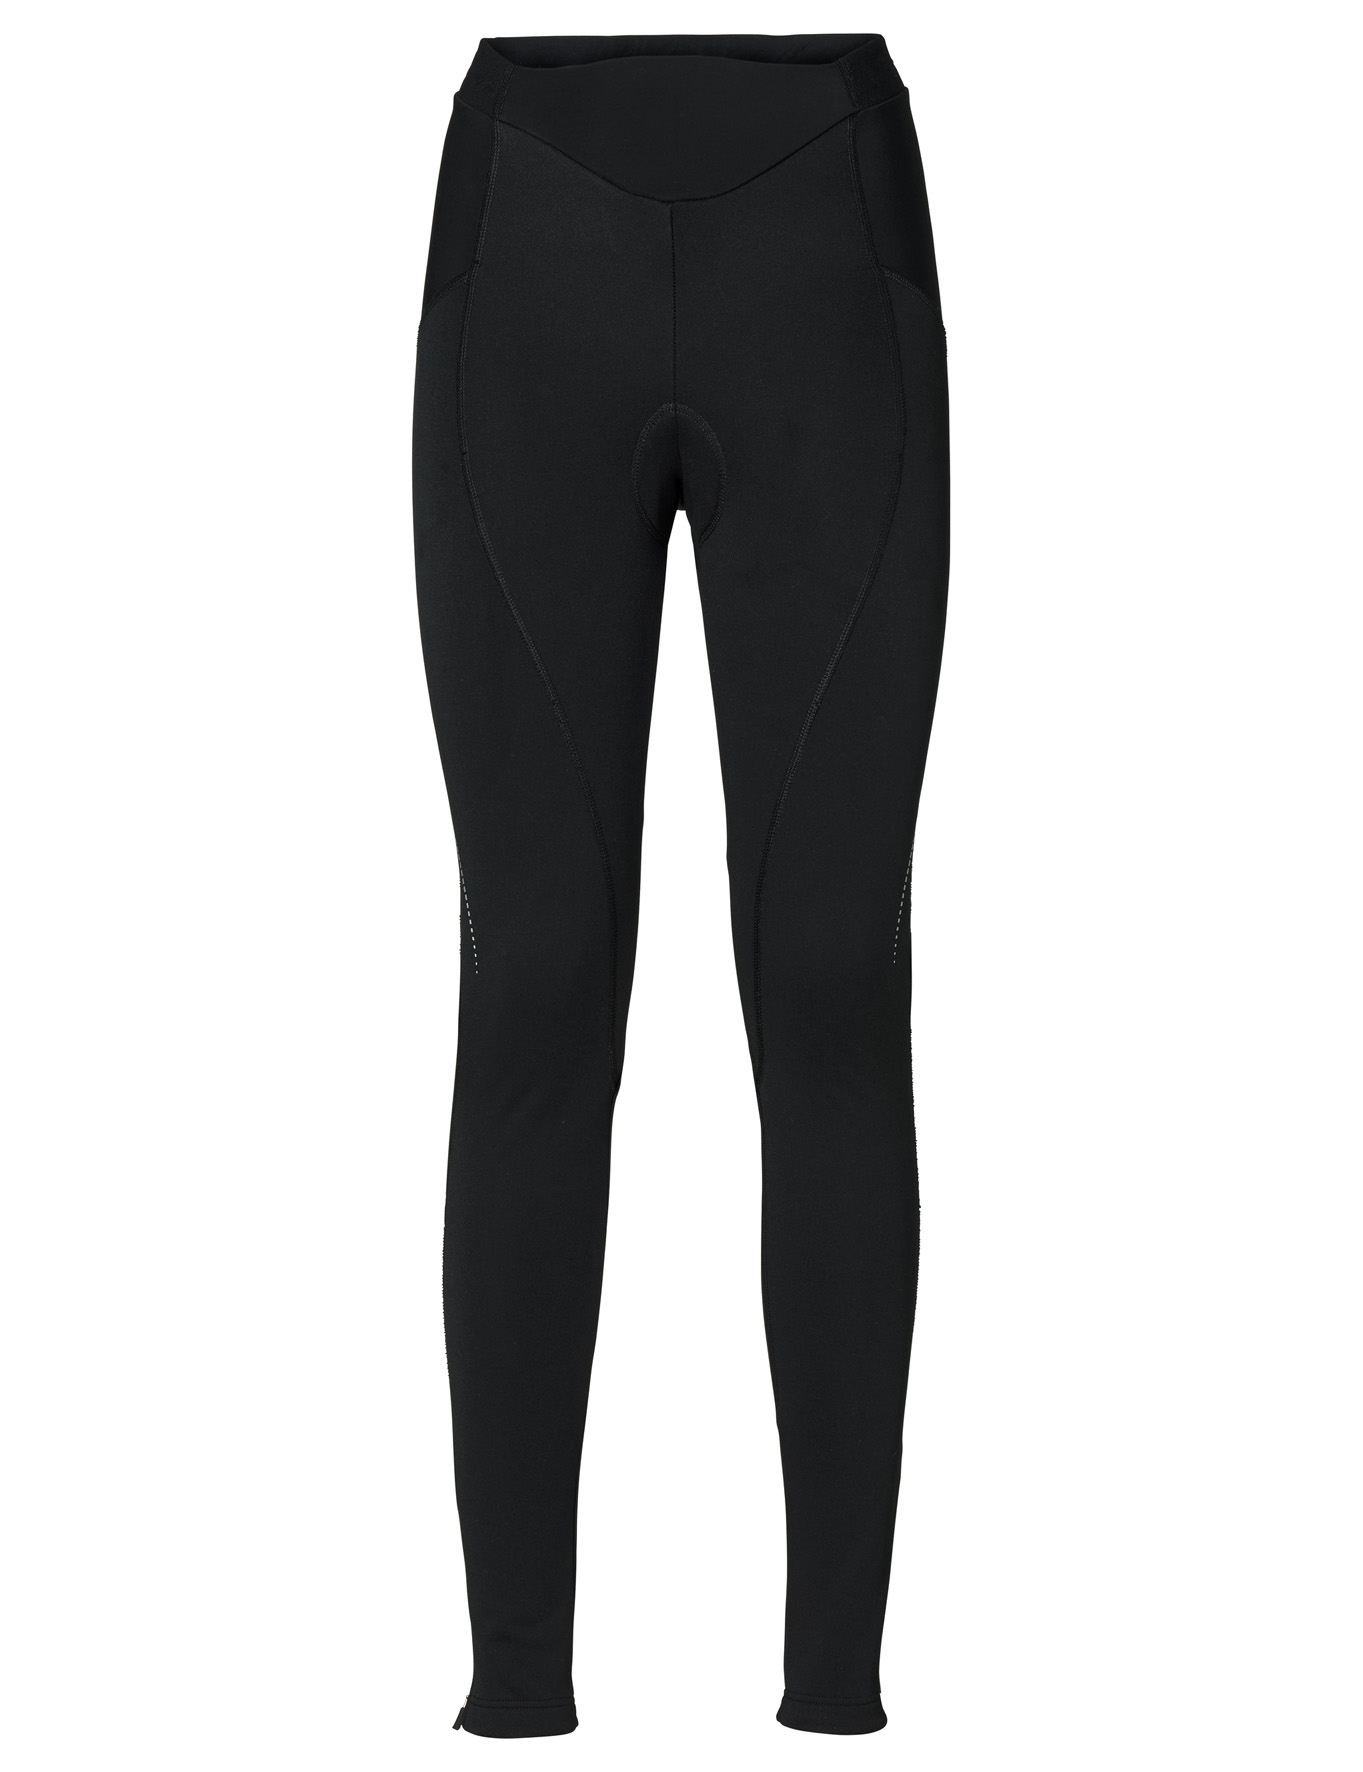 VAUDE Women´s Advanced Warm Pants w/o SC II black Größe 34 - schneider-sports